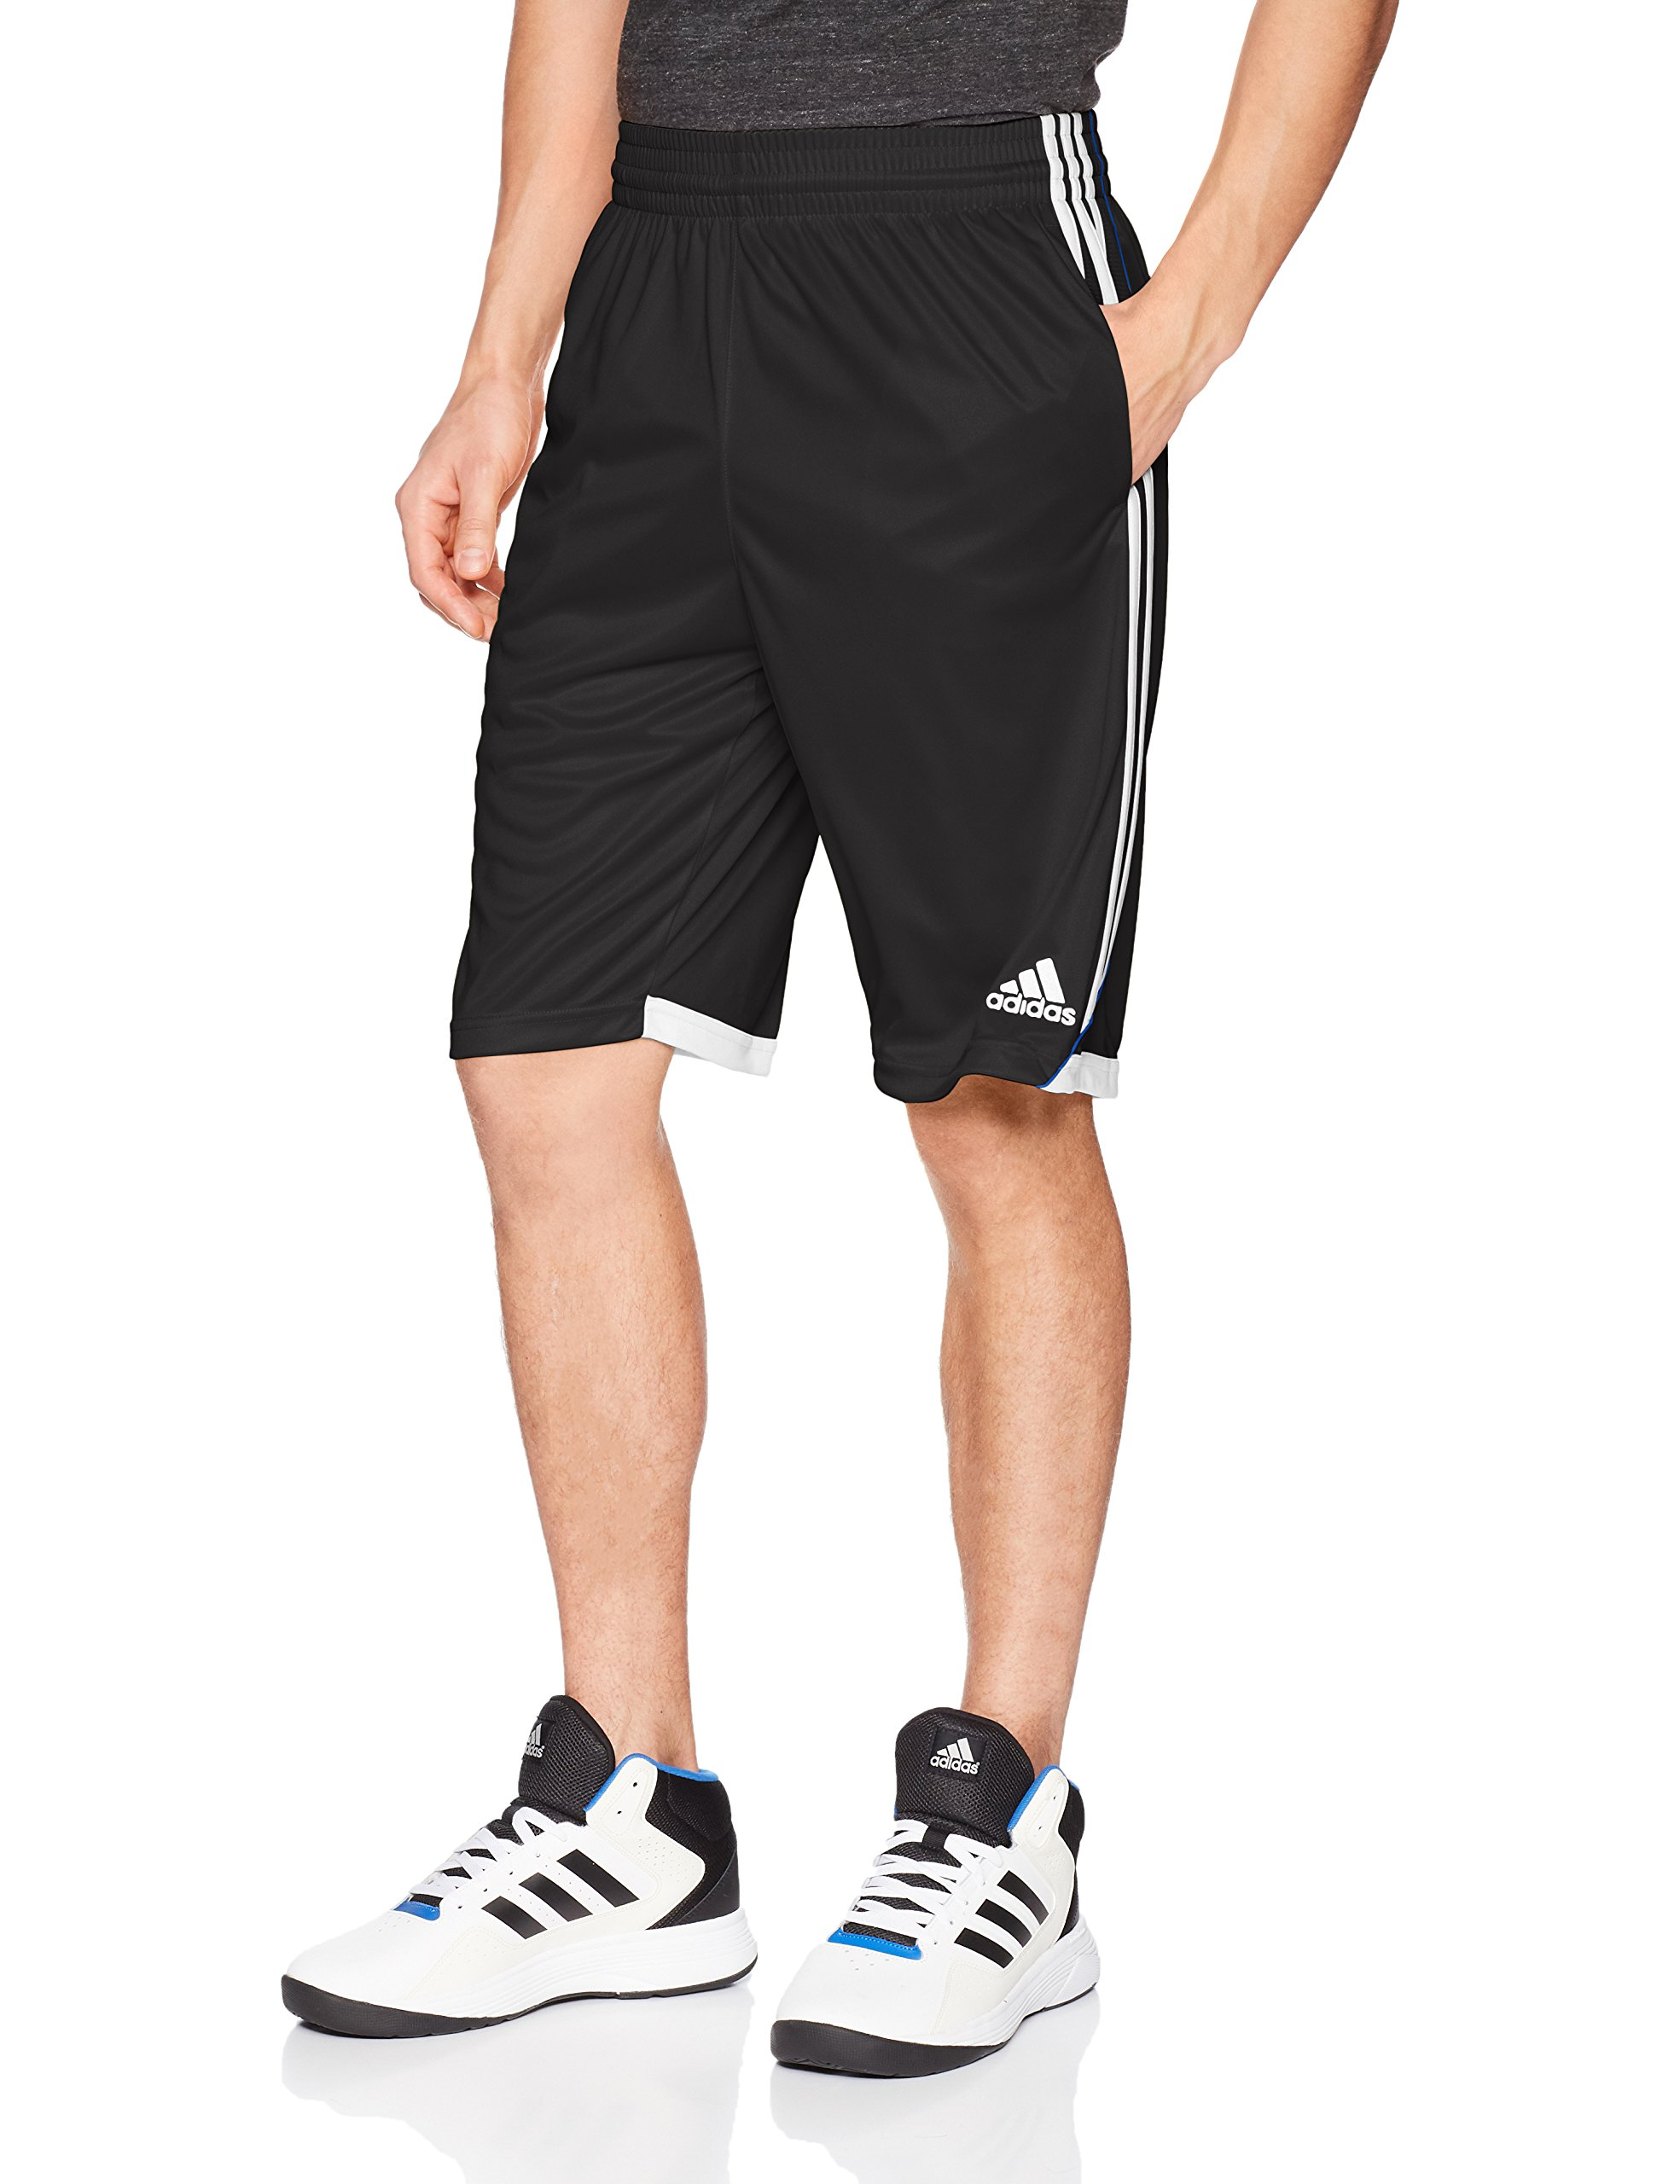 adidas Men's Basketball 3G Speed Shorts, Black, Medium